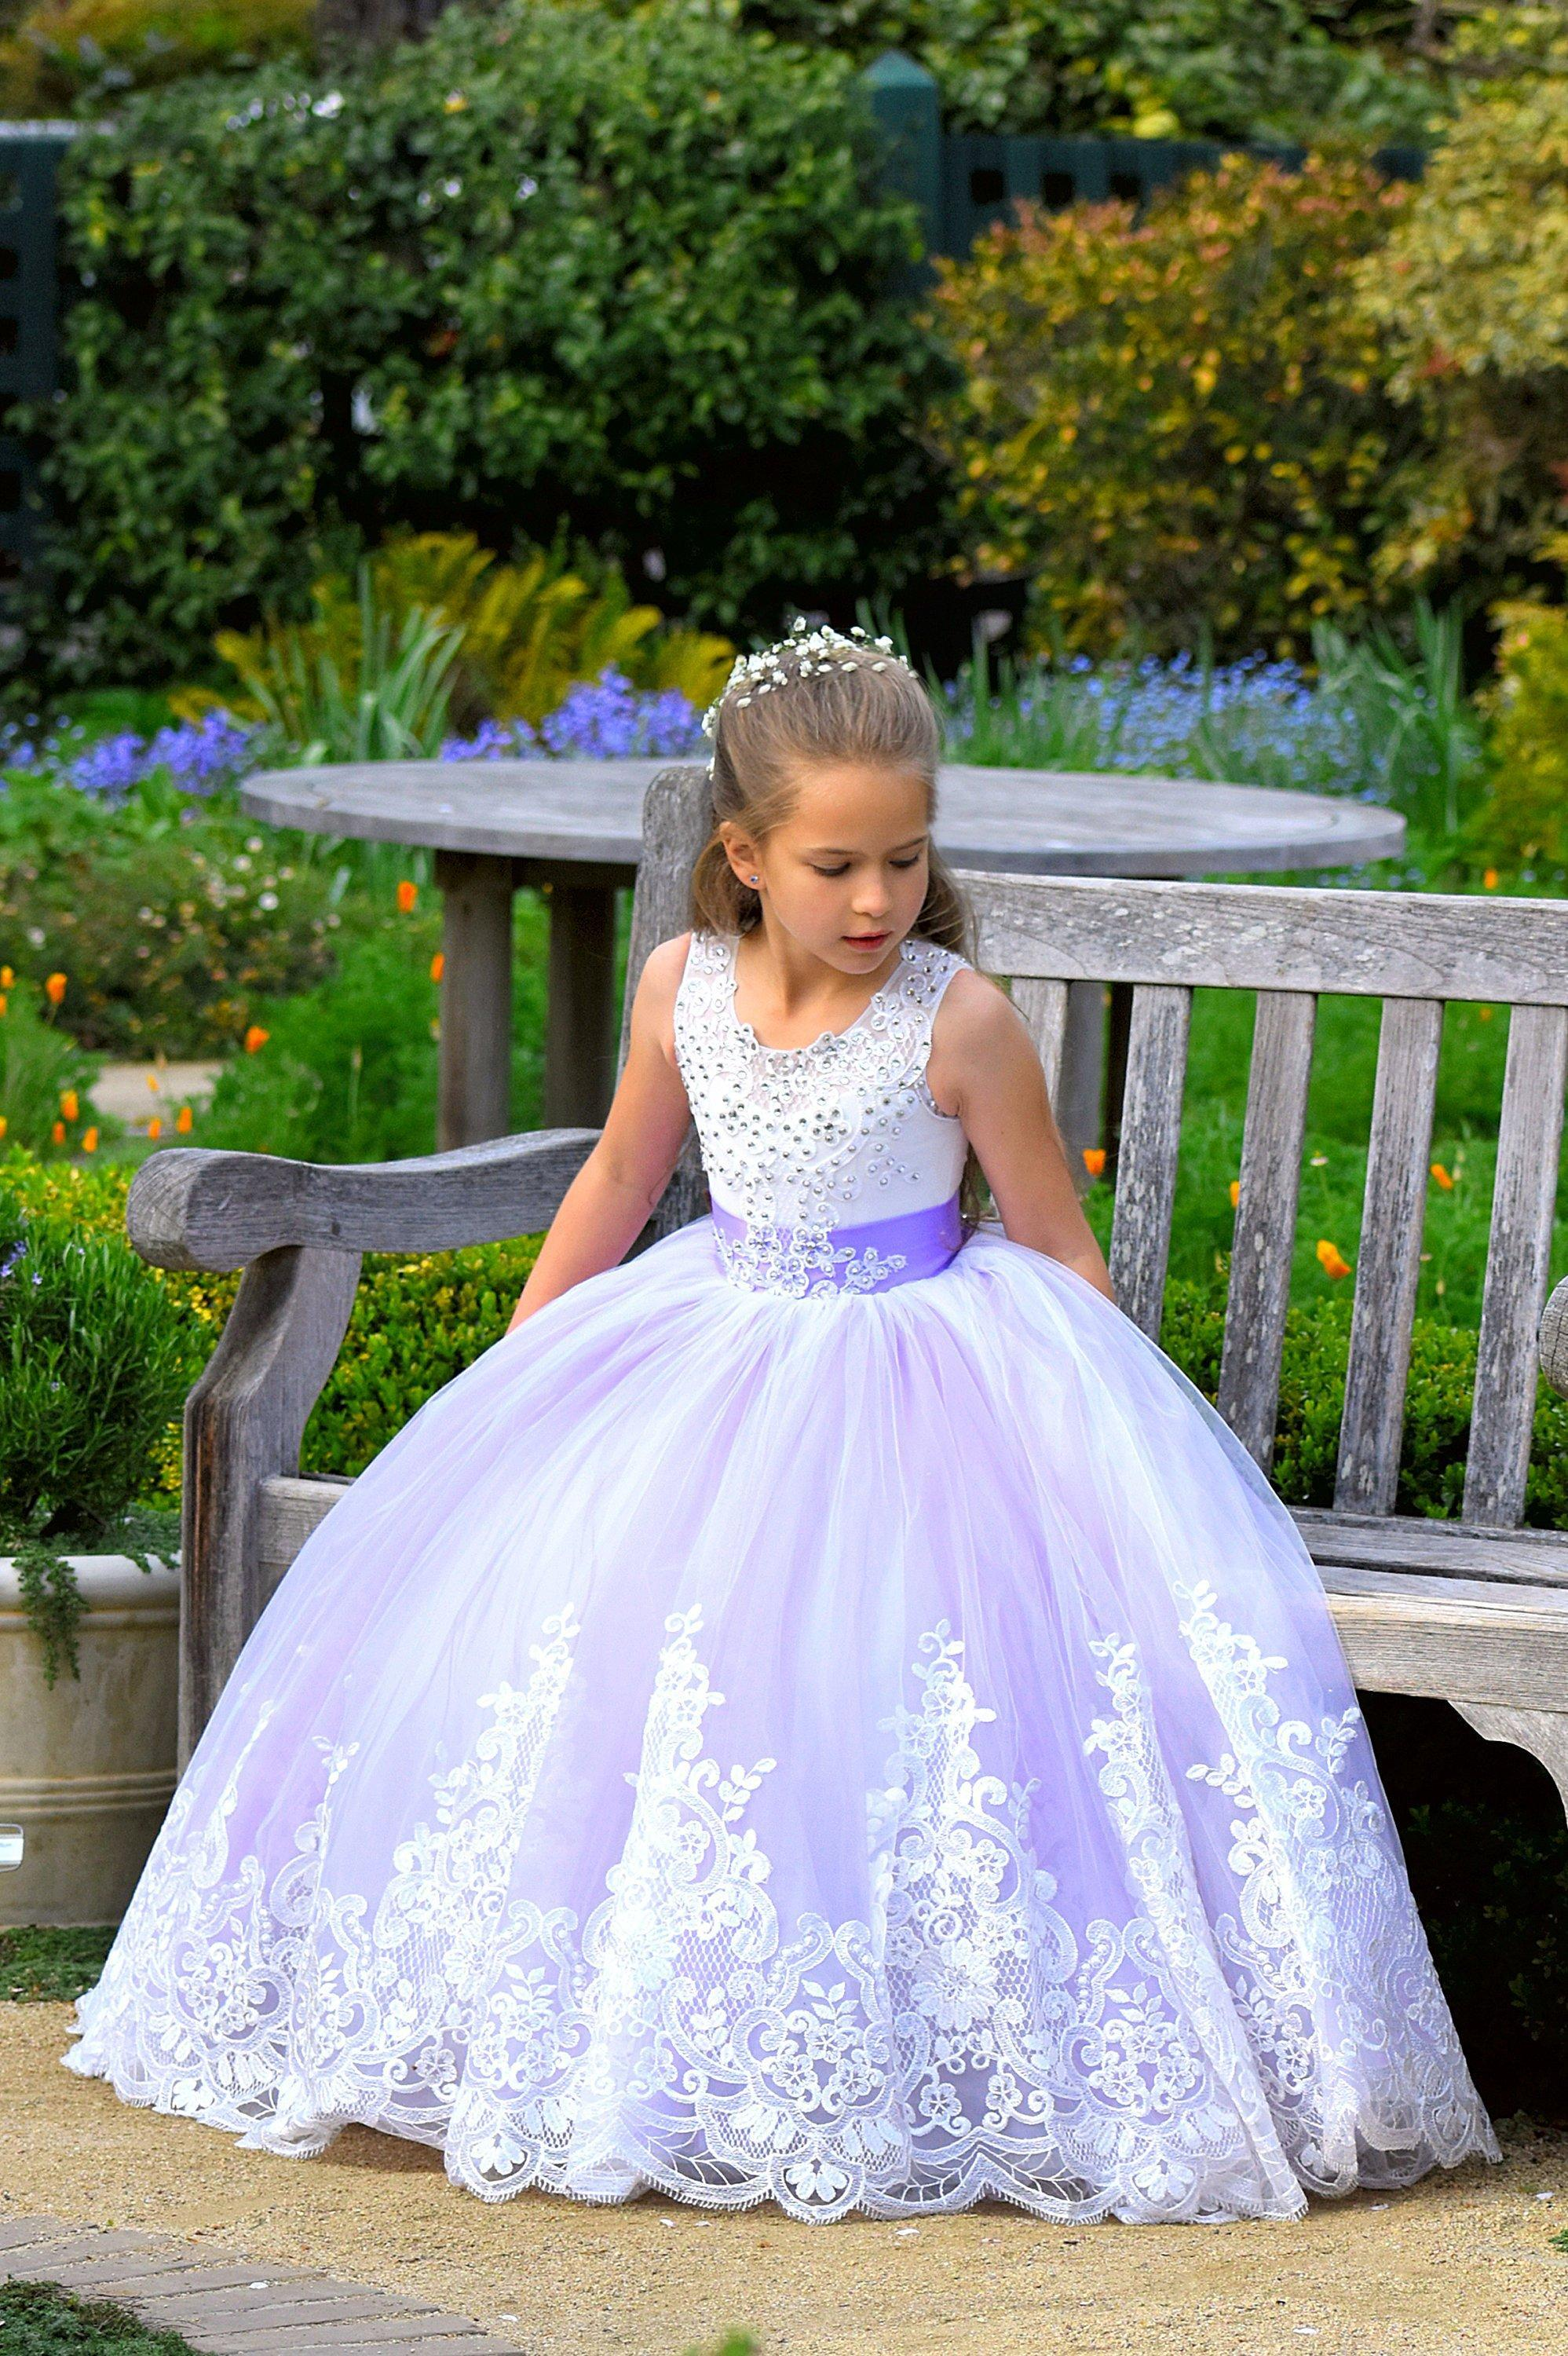 0fb0cef4e Purple Flower Girl Dress Lavender Wedding Lace Little Girl Kids ...